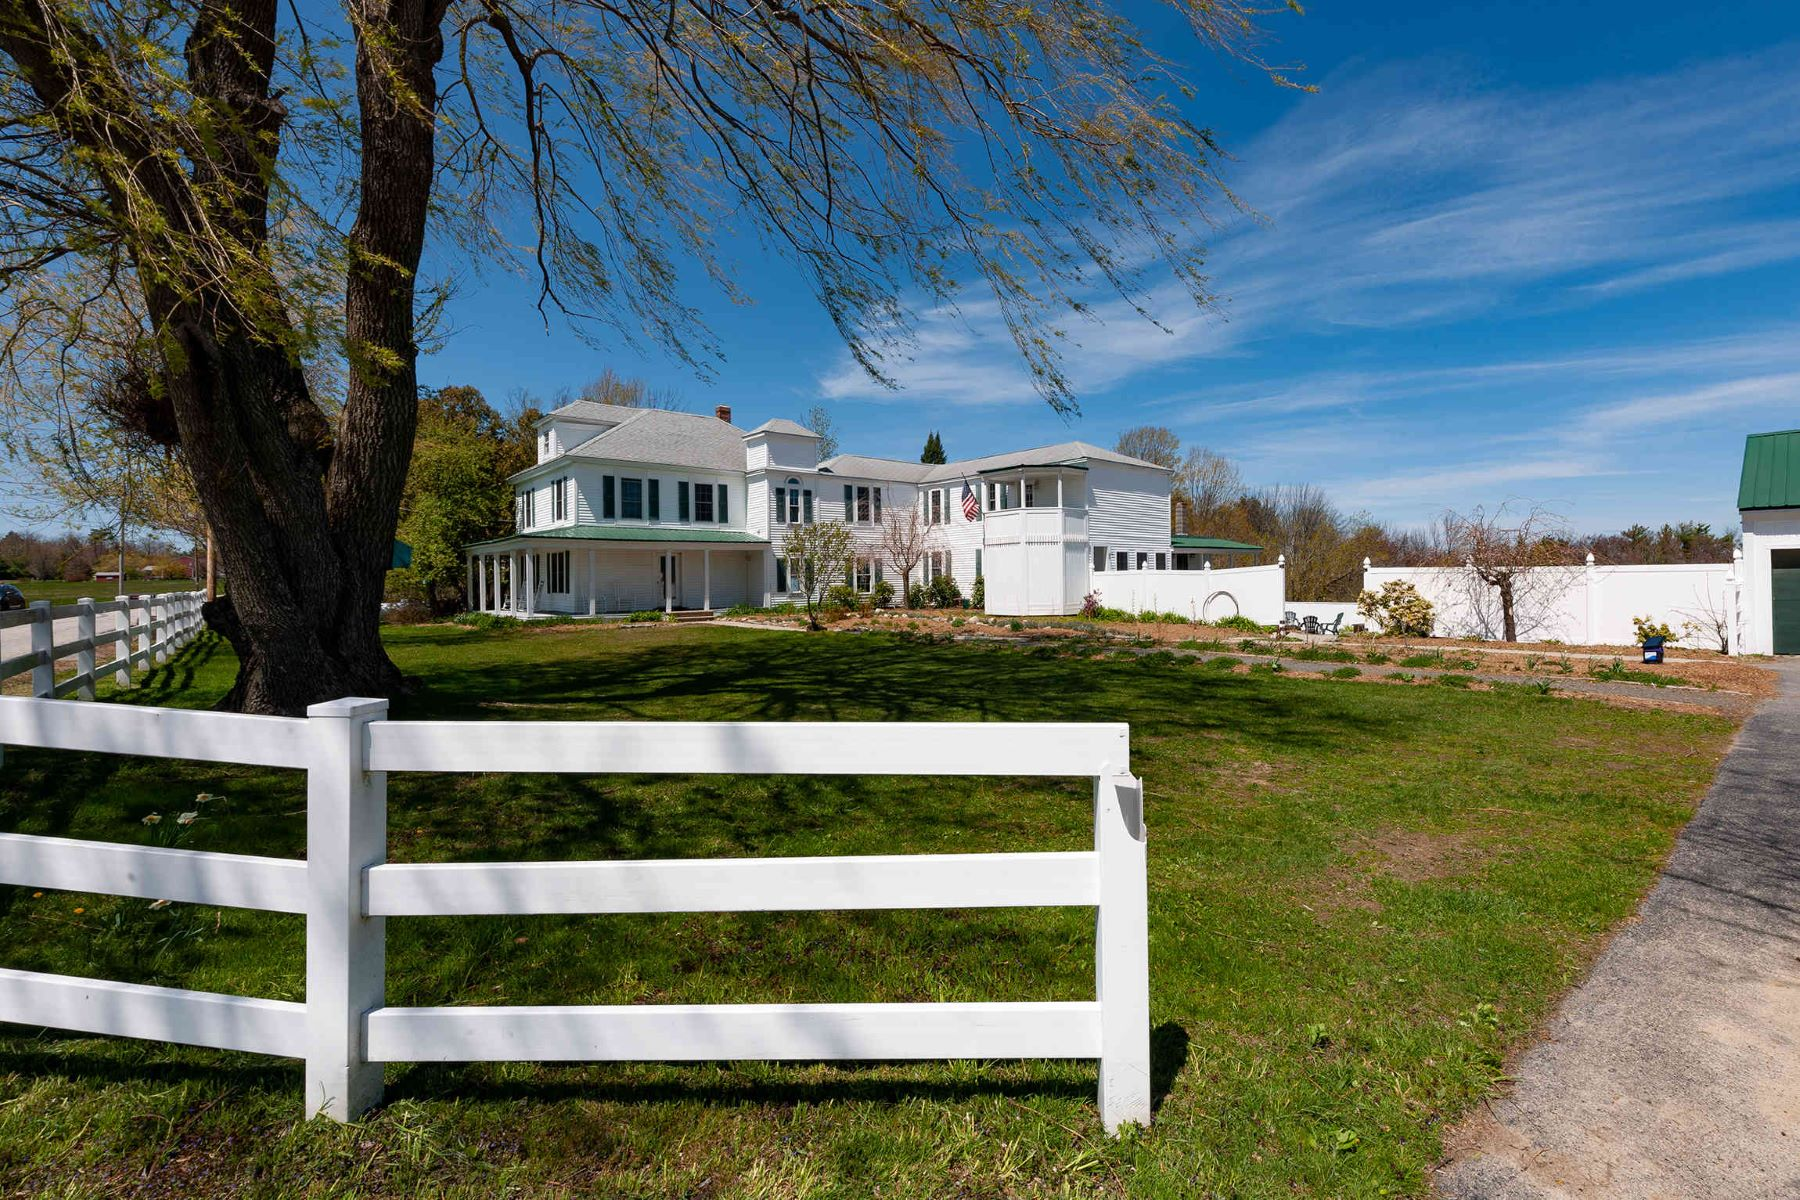 Single Family Homes for Sale at Expanded Farmhouse on a Picture Perfect Country Setting 273 Hanson's Ridge Road Sanford, Maine 04083 United States